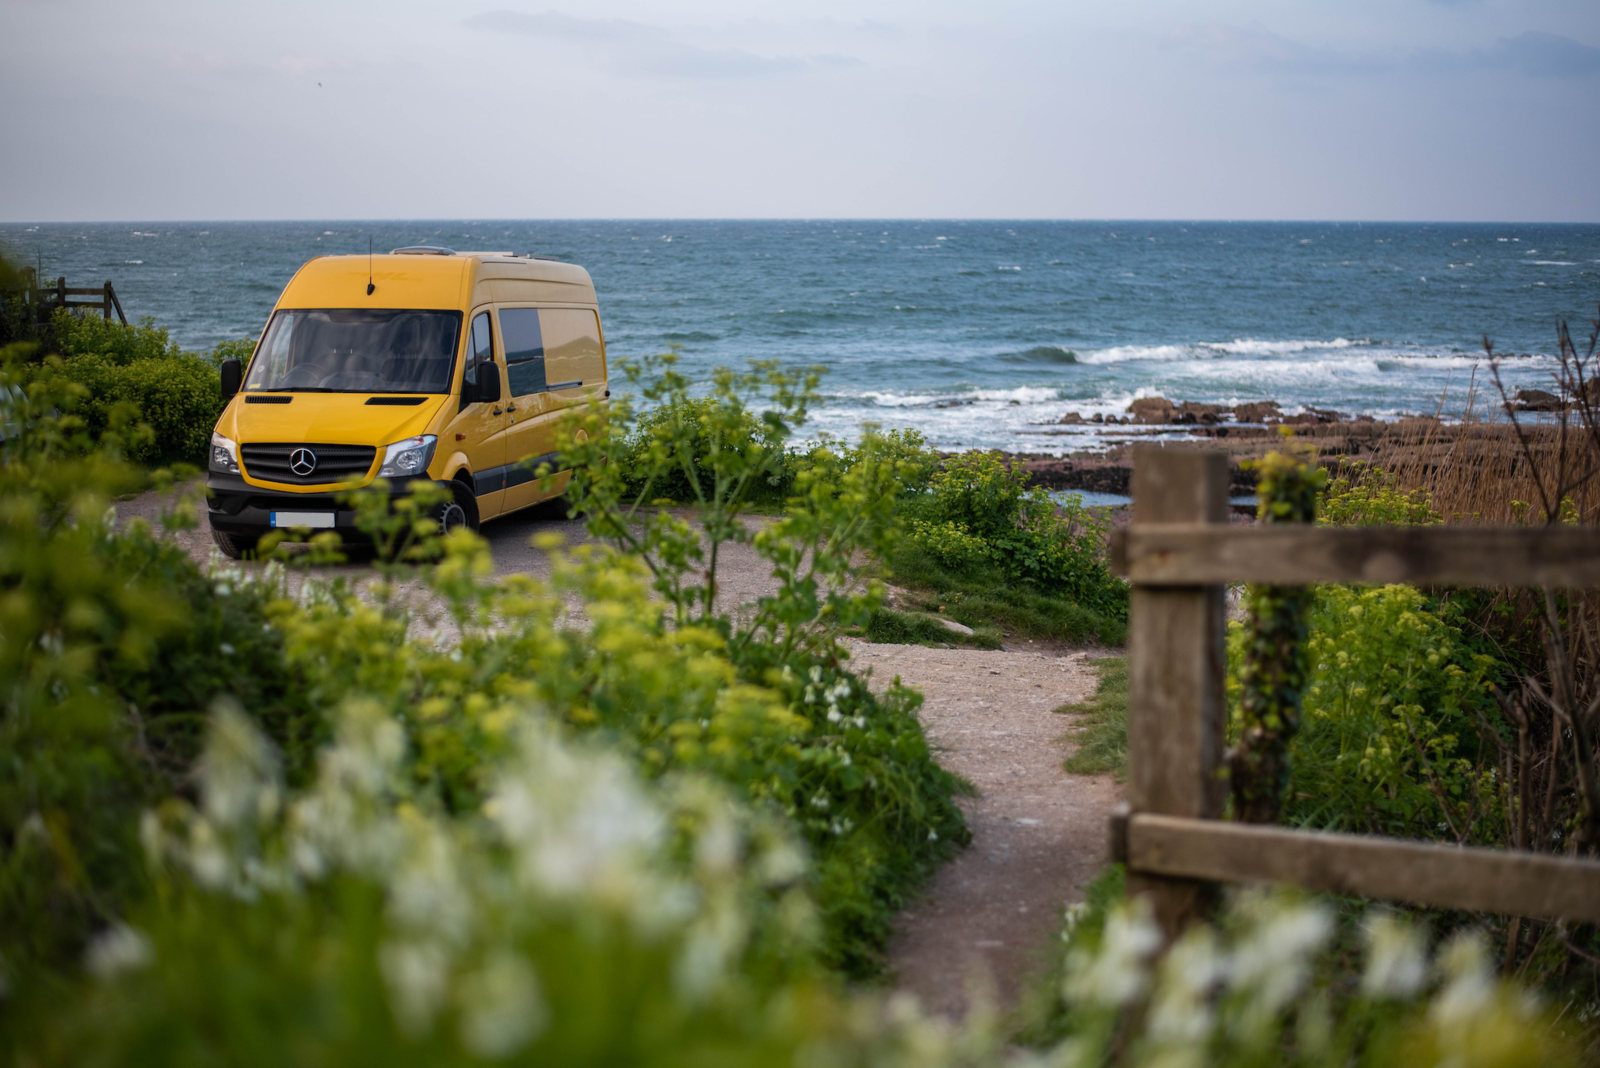 UK-based couple Charlie Low and Dale Comley converted this former DHL delivery van into a tiny home-on-wheels that would take them on new climbing adventures.  Photo 2 of 22 in Budget Breakdown: A Climbing Couple Turn a Delivery Van Into an Adventure Mobile for $8.5K